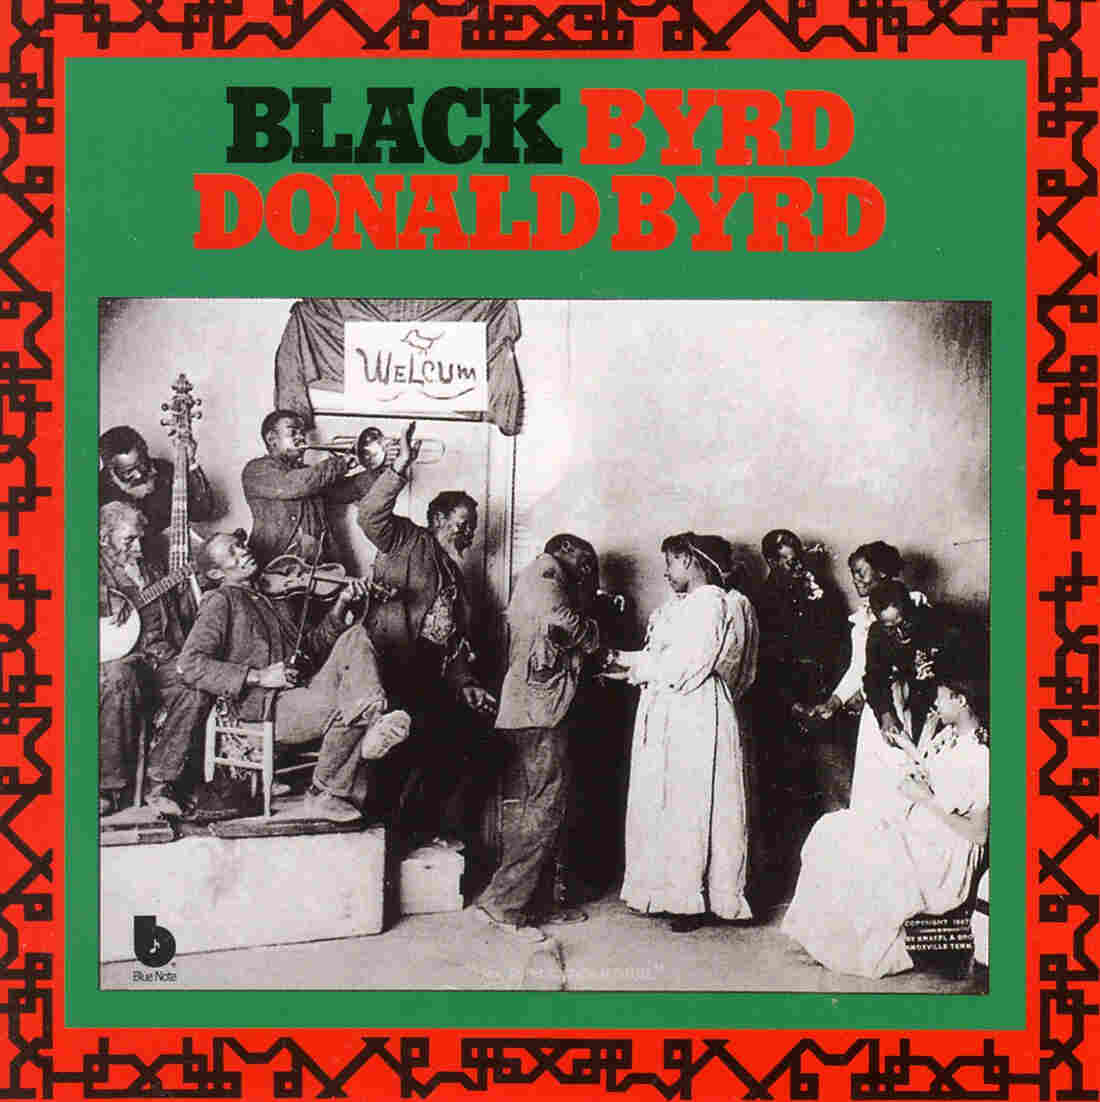 The cover to Donald Byrd's Black Byrd, one of the hit albums for Byrd in the '70s.